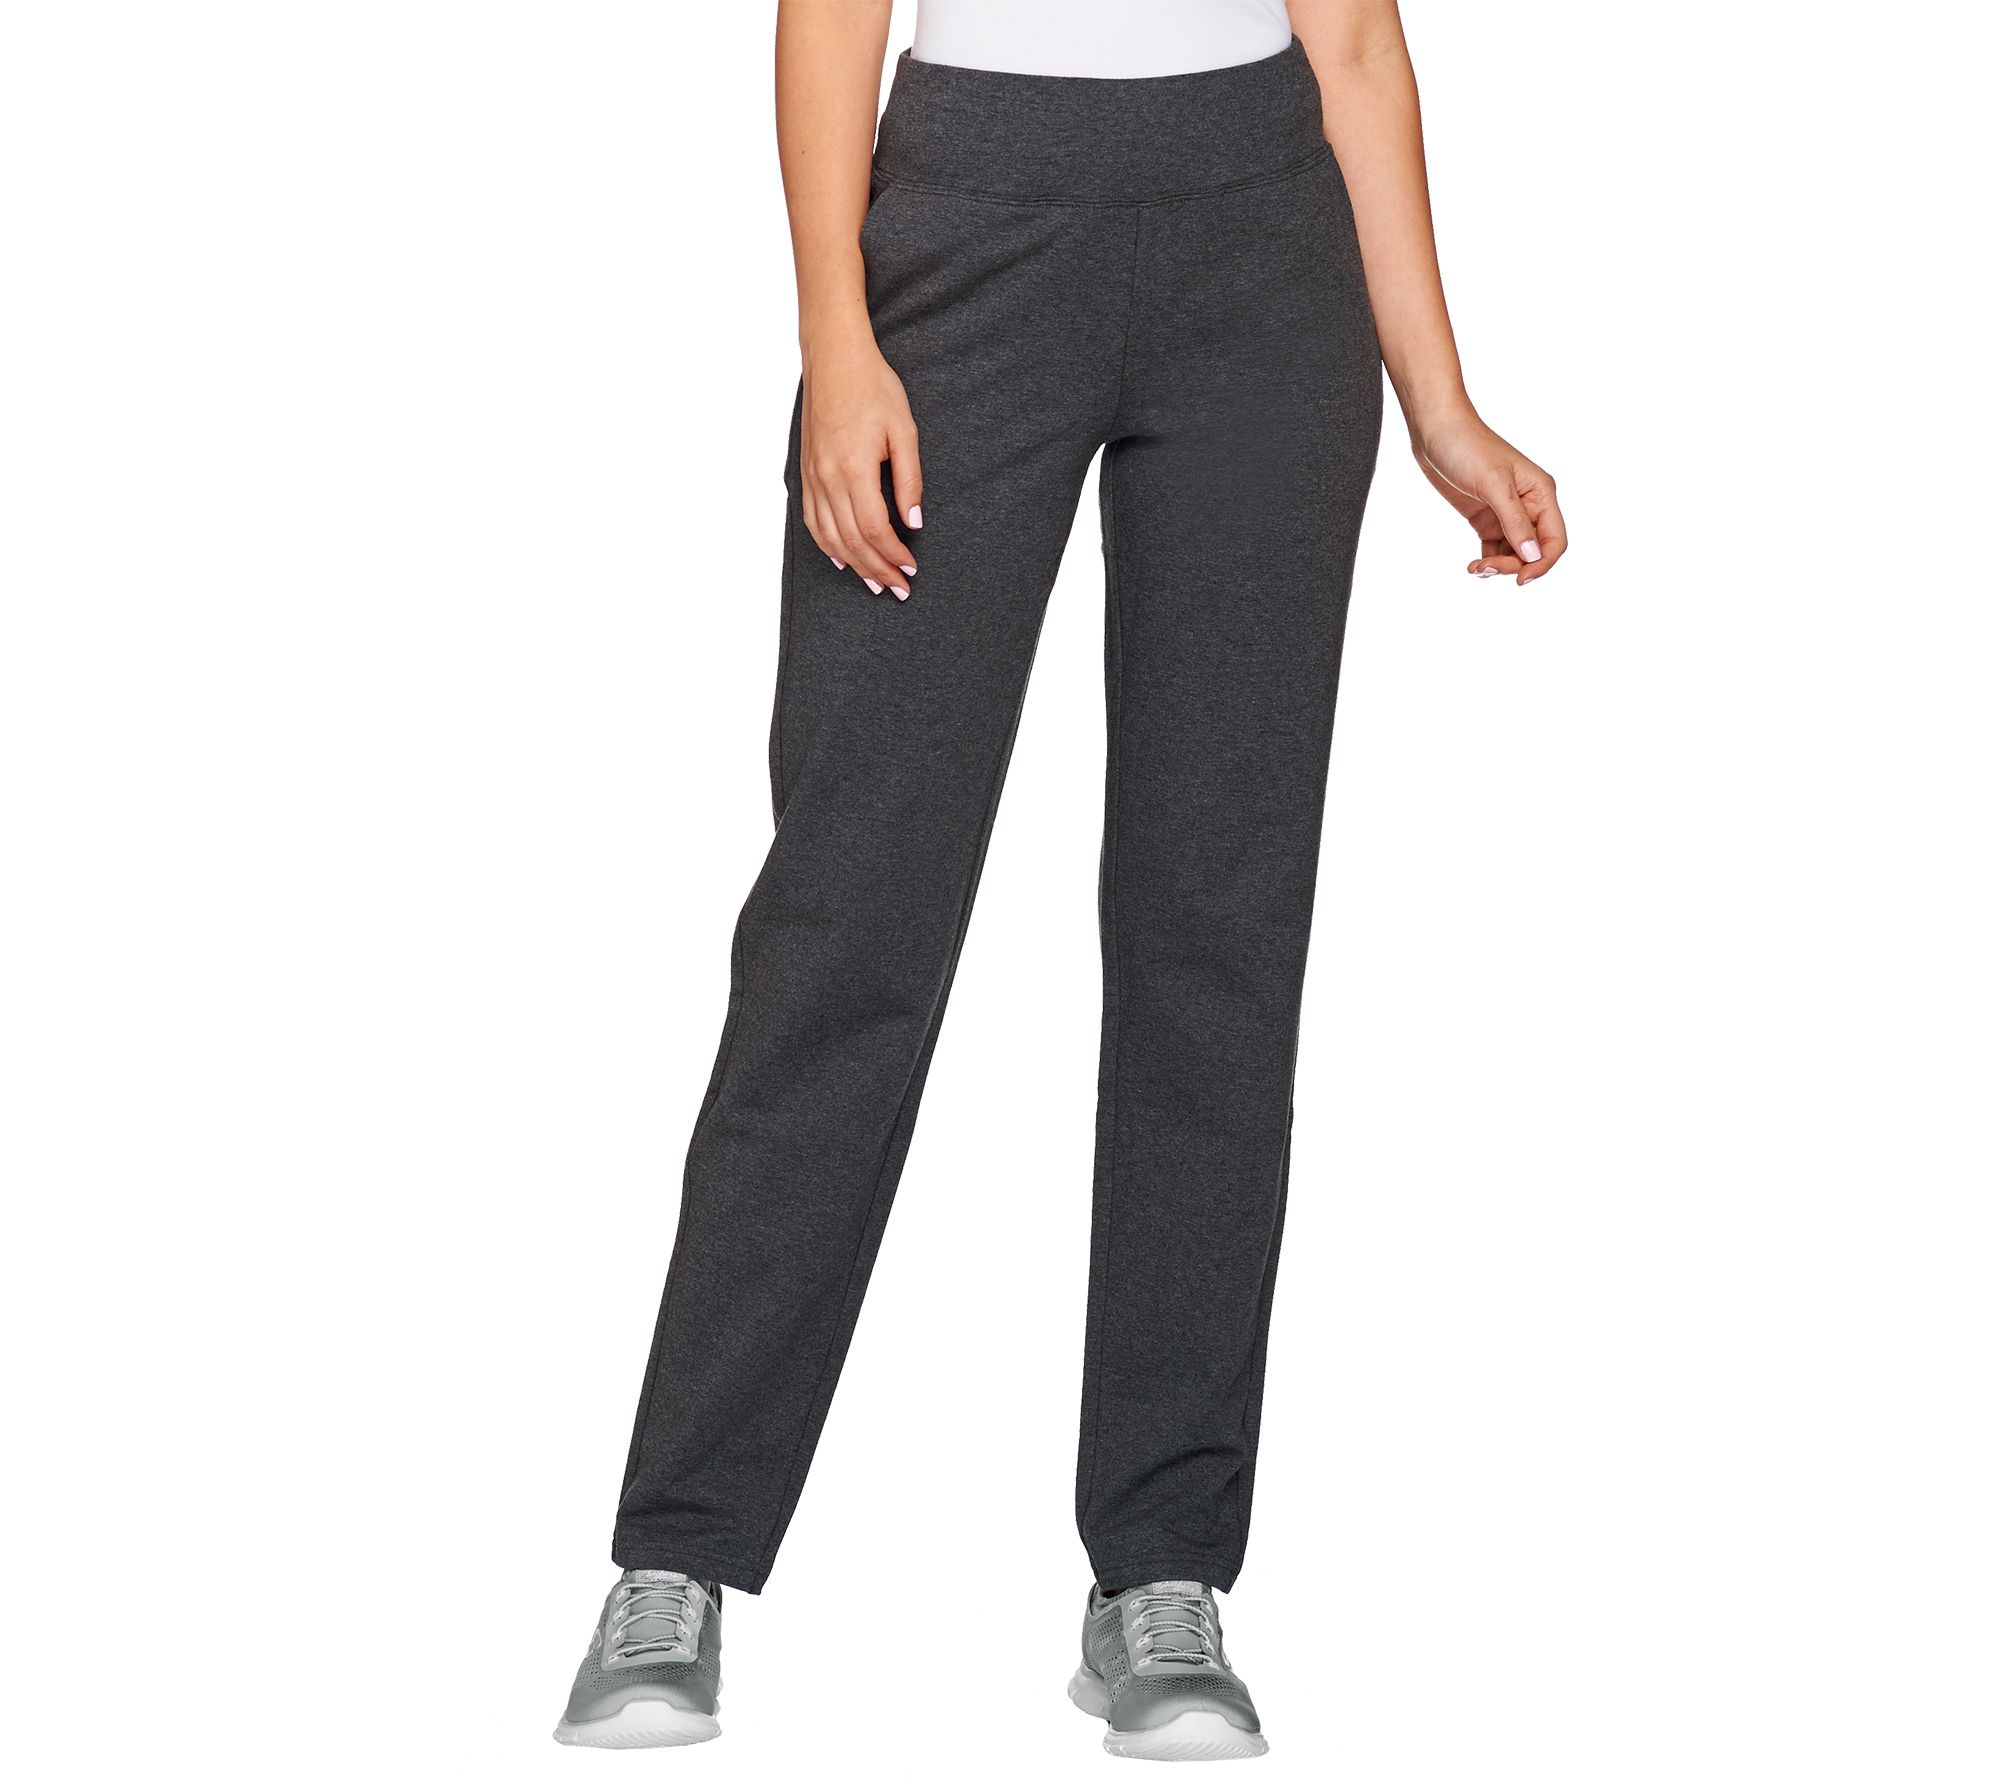 781a4daeb1a1 Active Regular French Terry Contour Waistband Pants - Page 1 — QVC.com